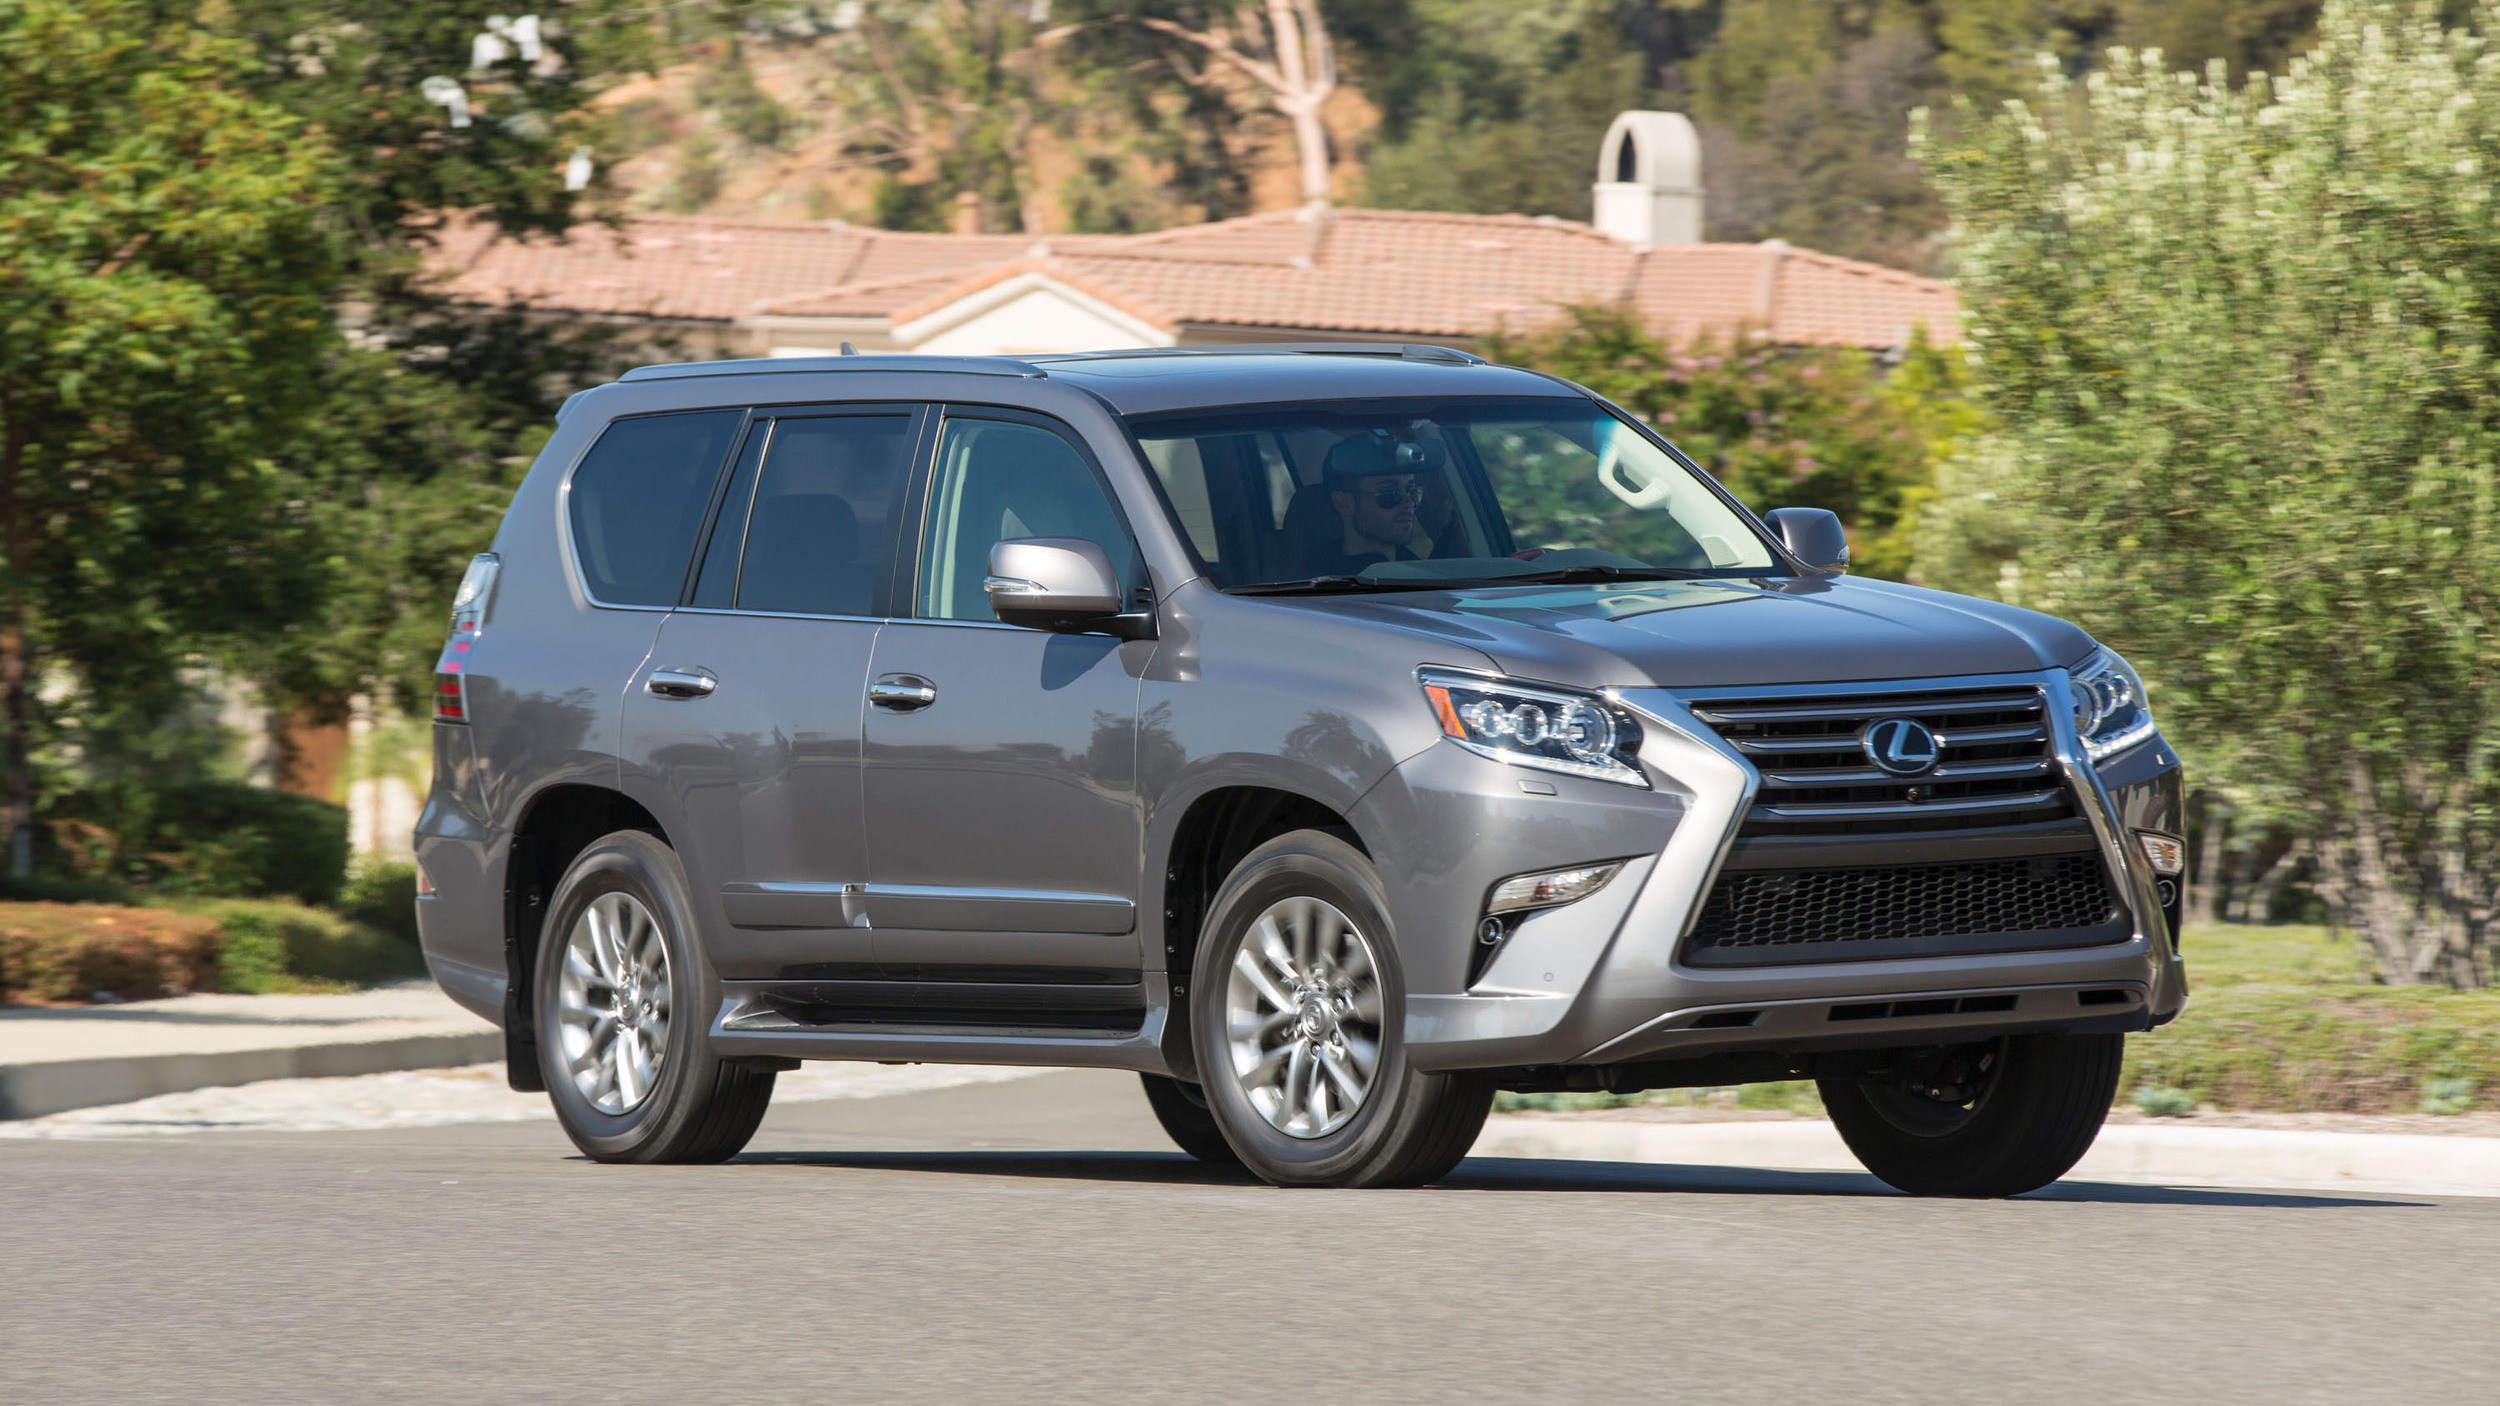 2018 Lexus GX 460 is a rugged but dated old-school SUV | Autoblog